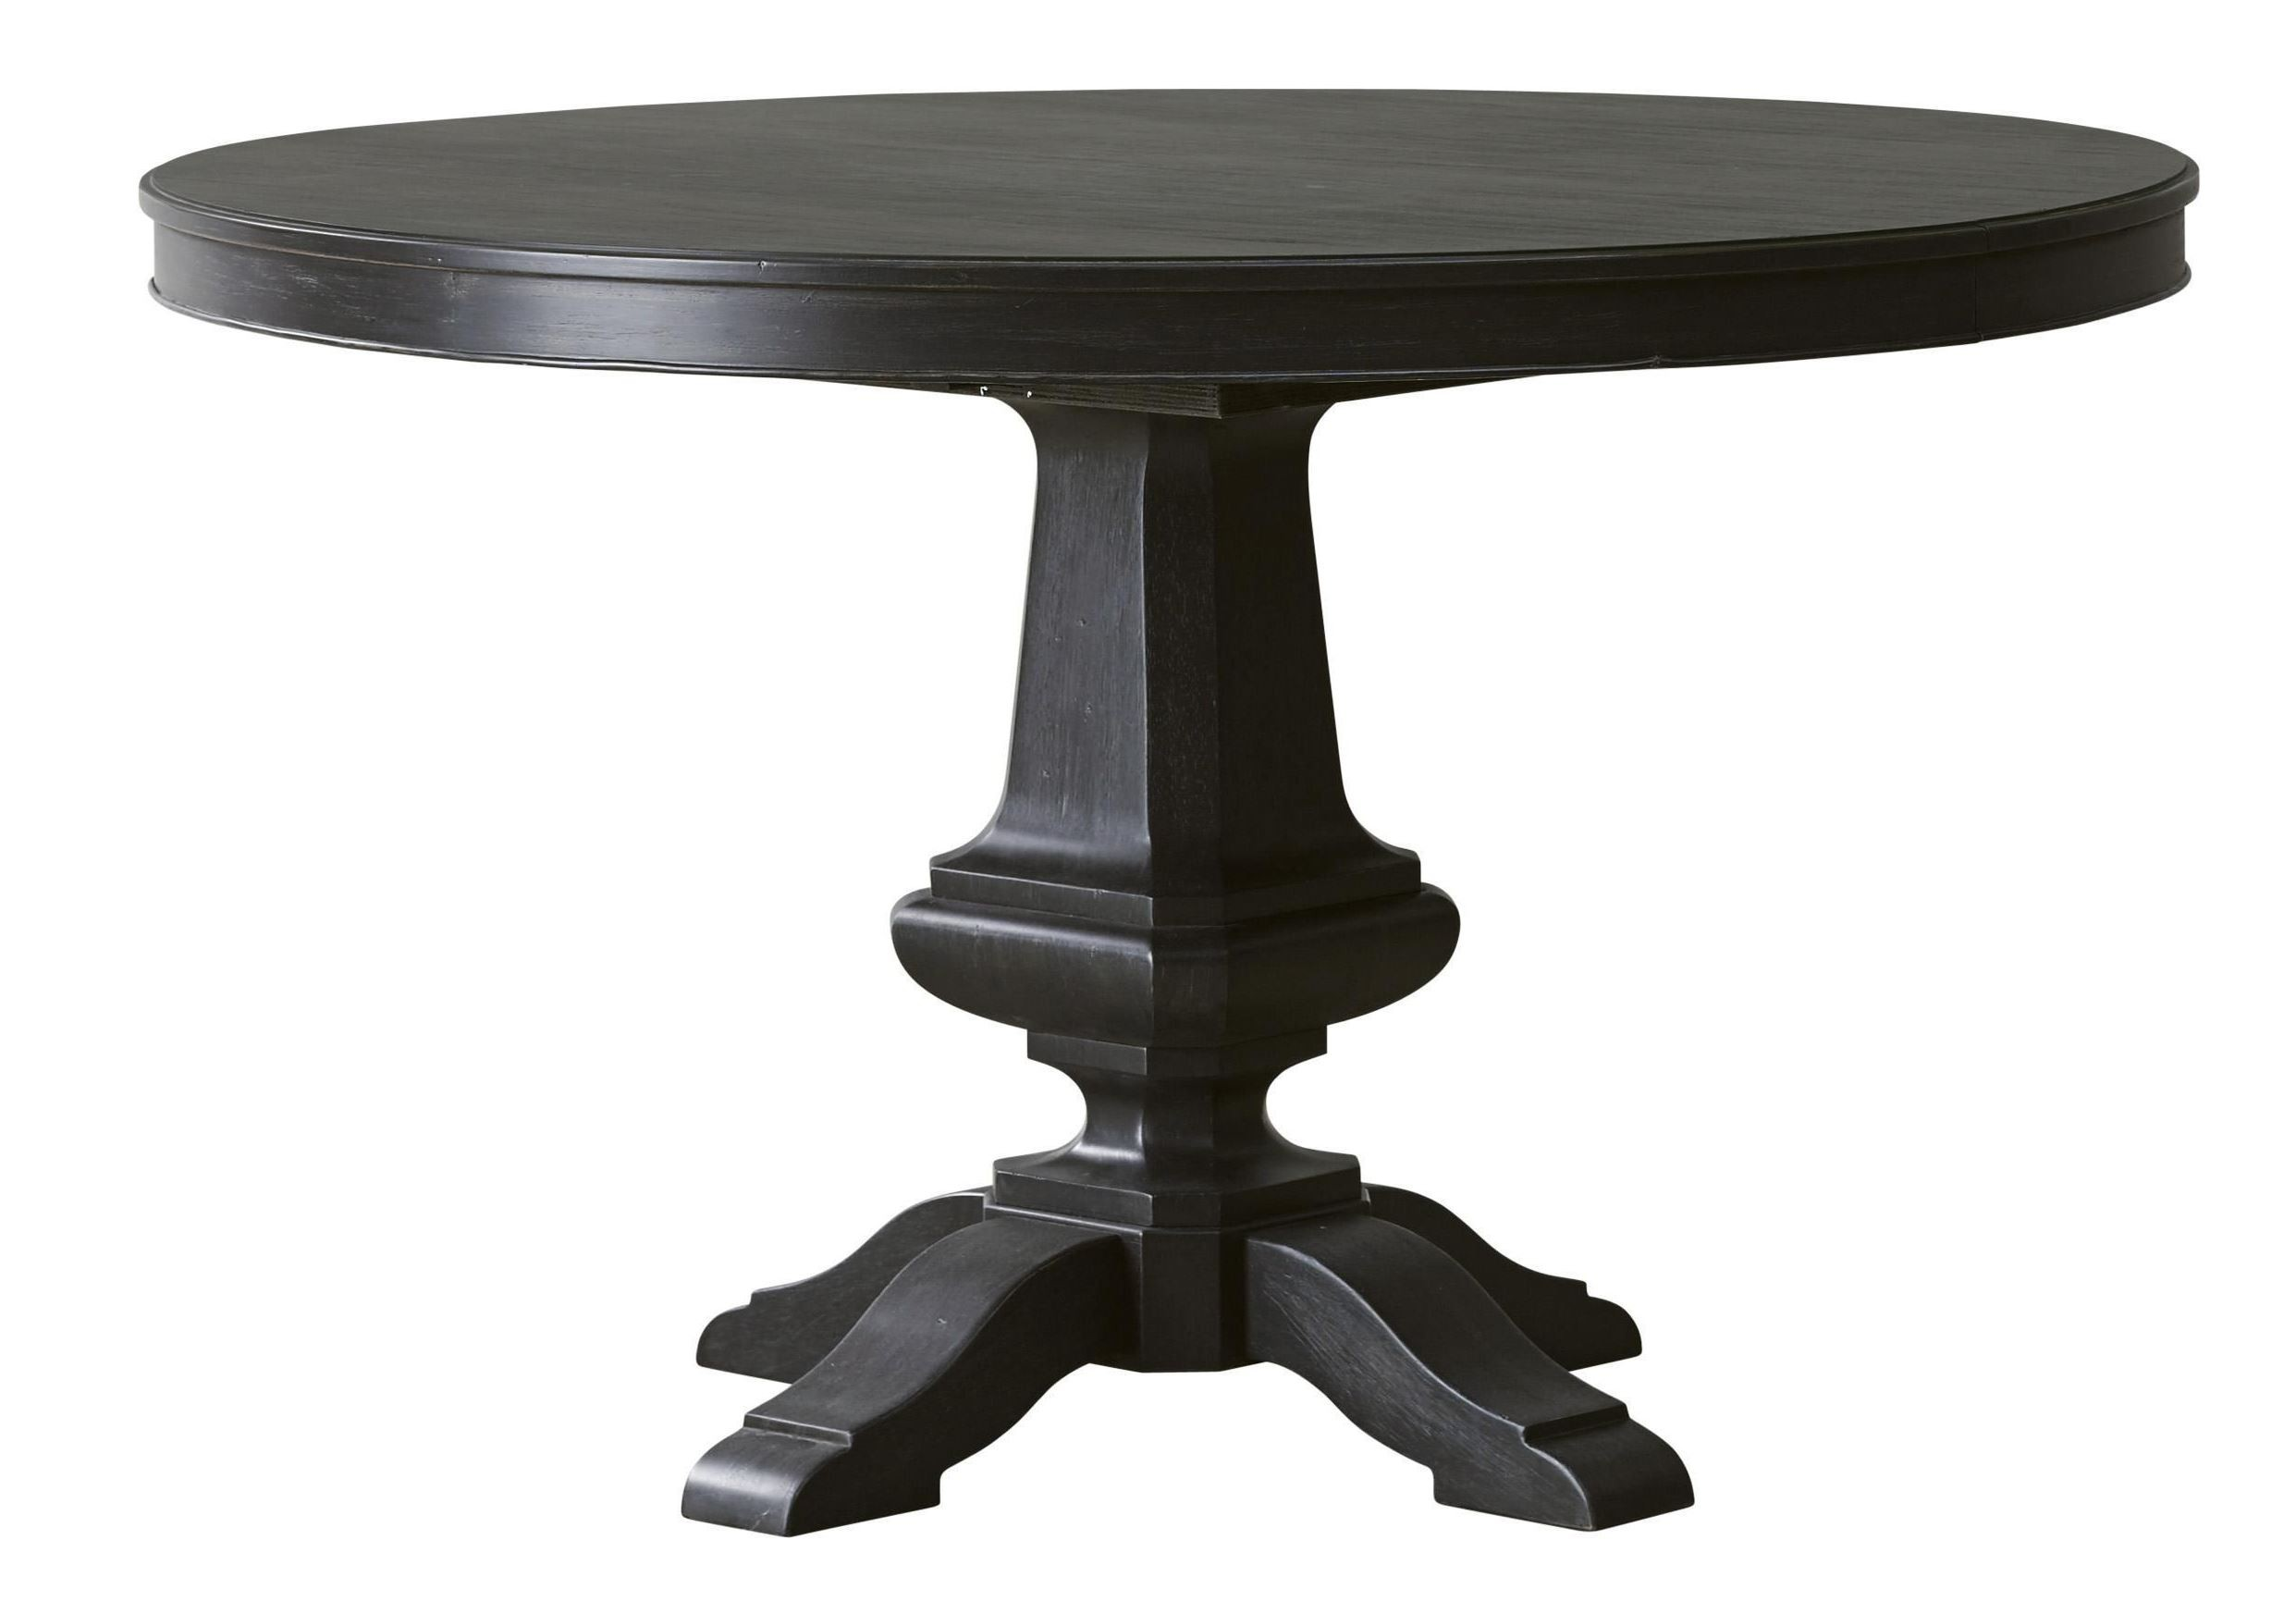 Vintage Tempo Unique Charcoal Round Dining Table From